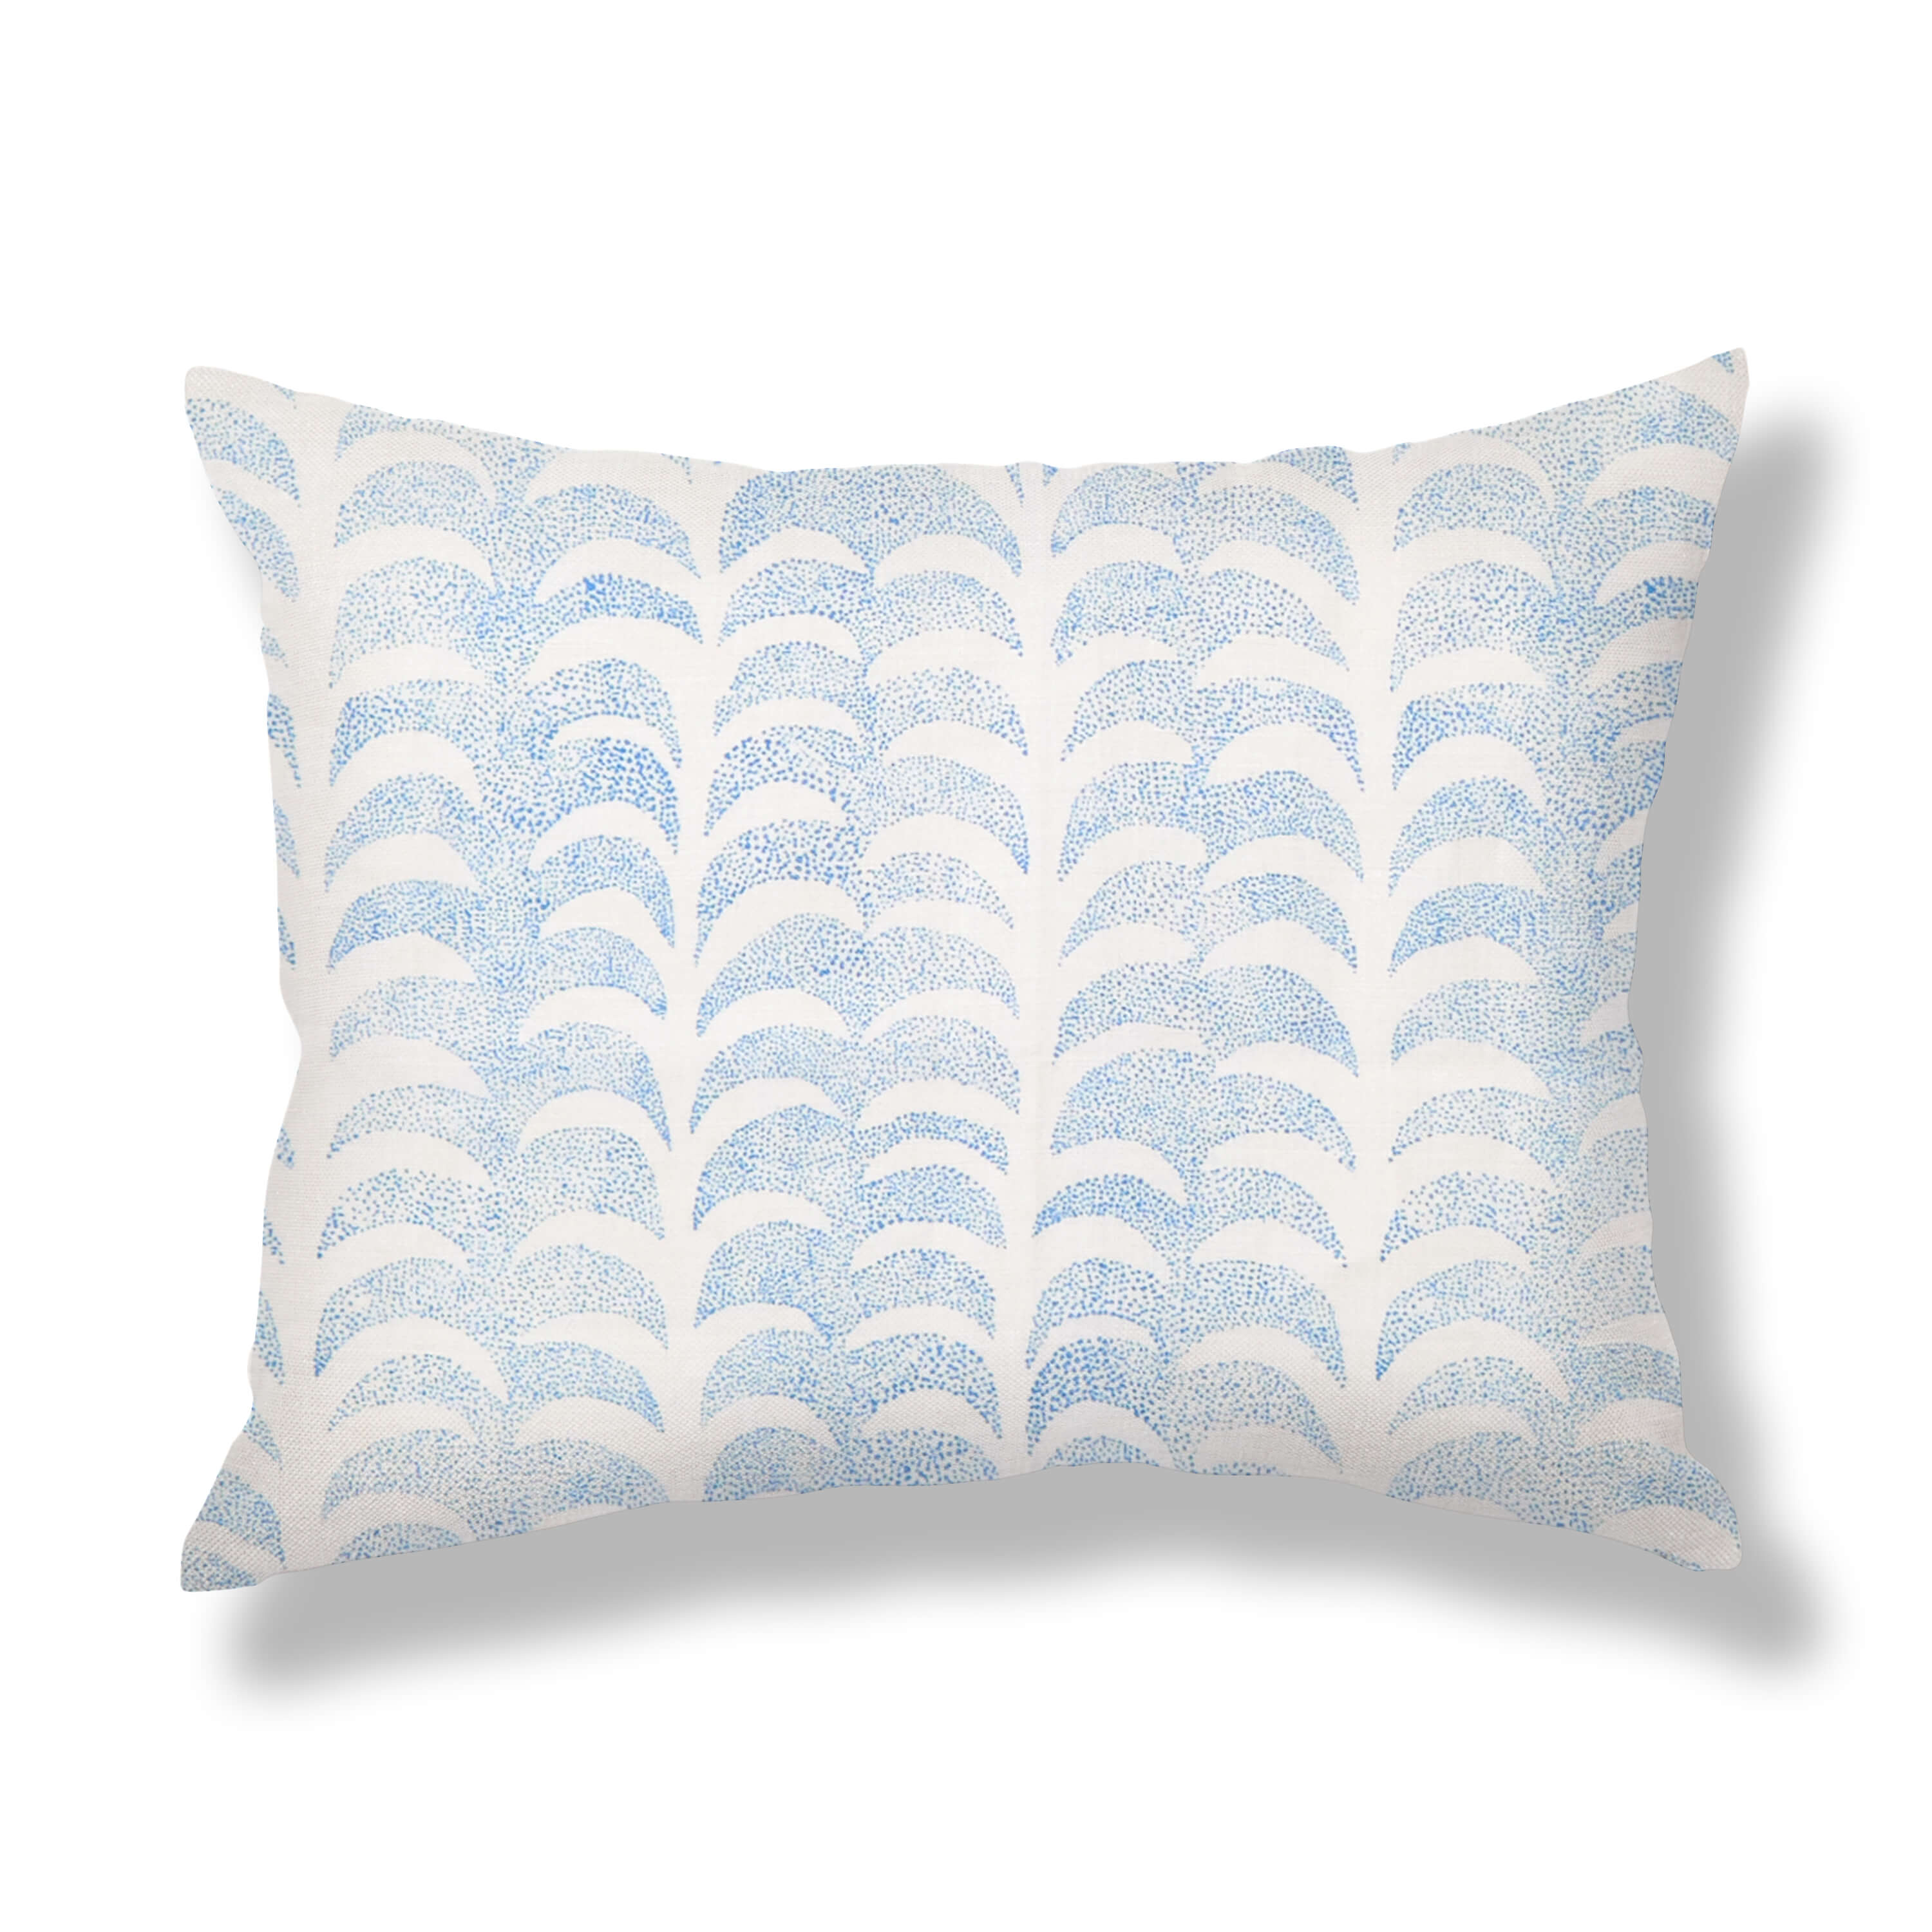 Dotted Palm Pillows in Blue